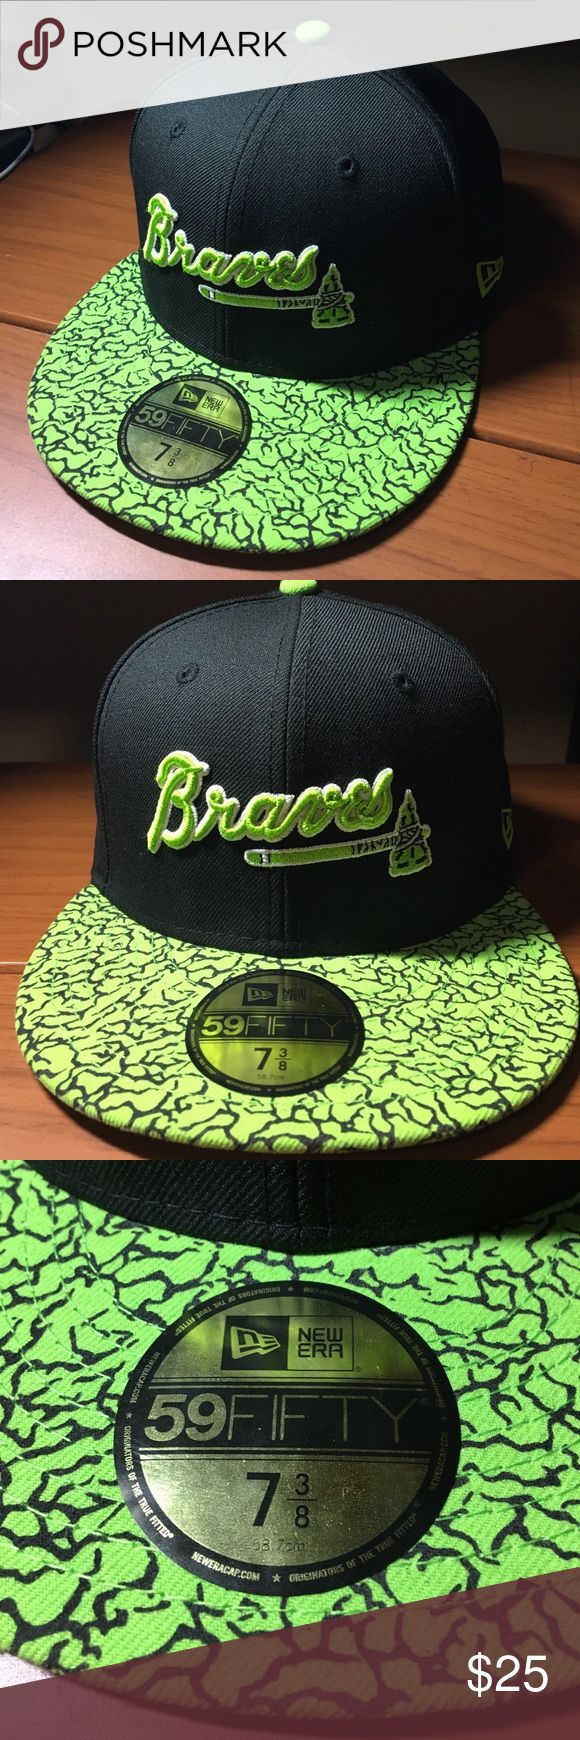 New Era Atlanta Braves hat ‼️ Brand New‼️ Atlanta braves 59fifty hat with no wear and is in great condition. Neon green lettering and front bill. Stickers attached. Size- 7 3/8. Name brand made with 80% wool and 20% polyester New Era Accessories Hats